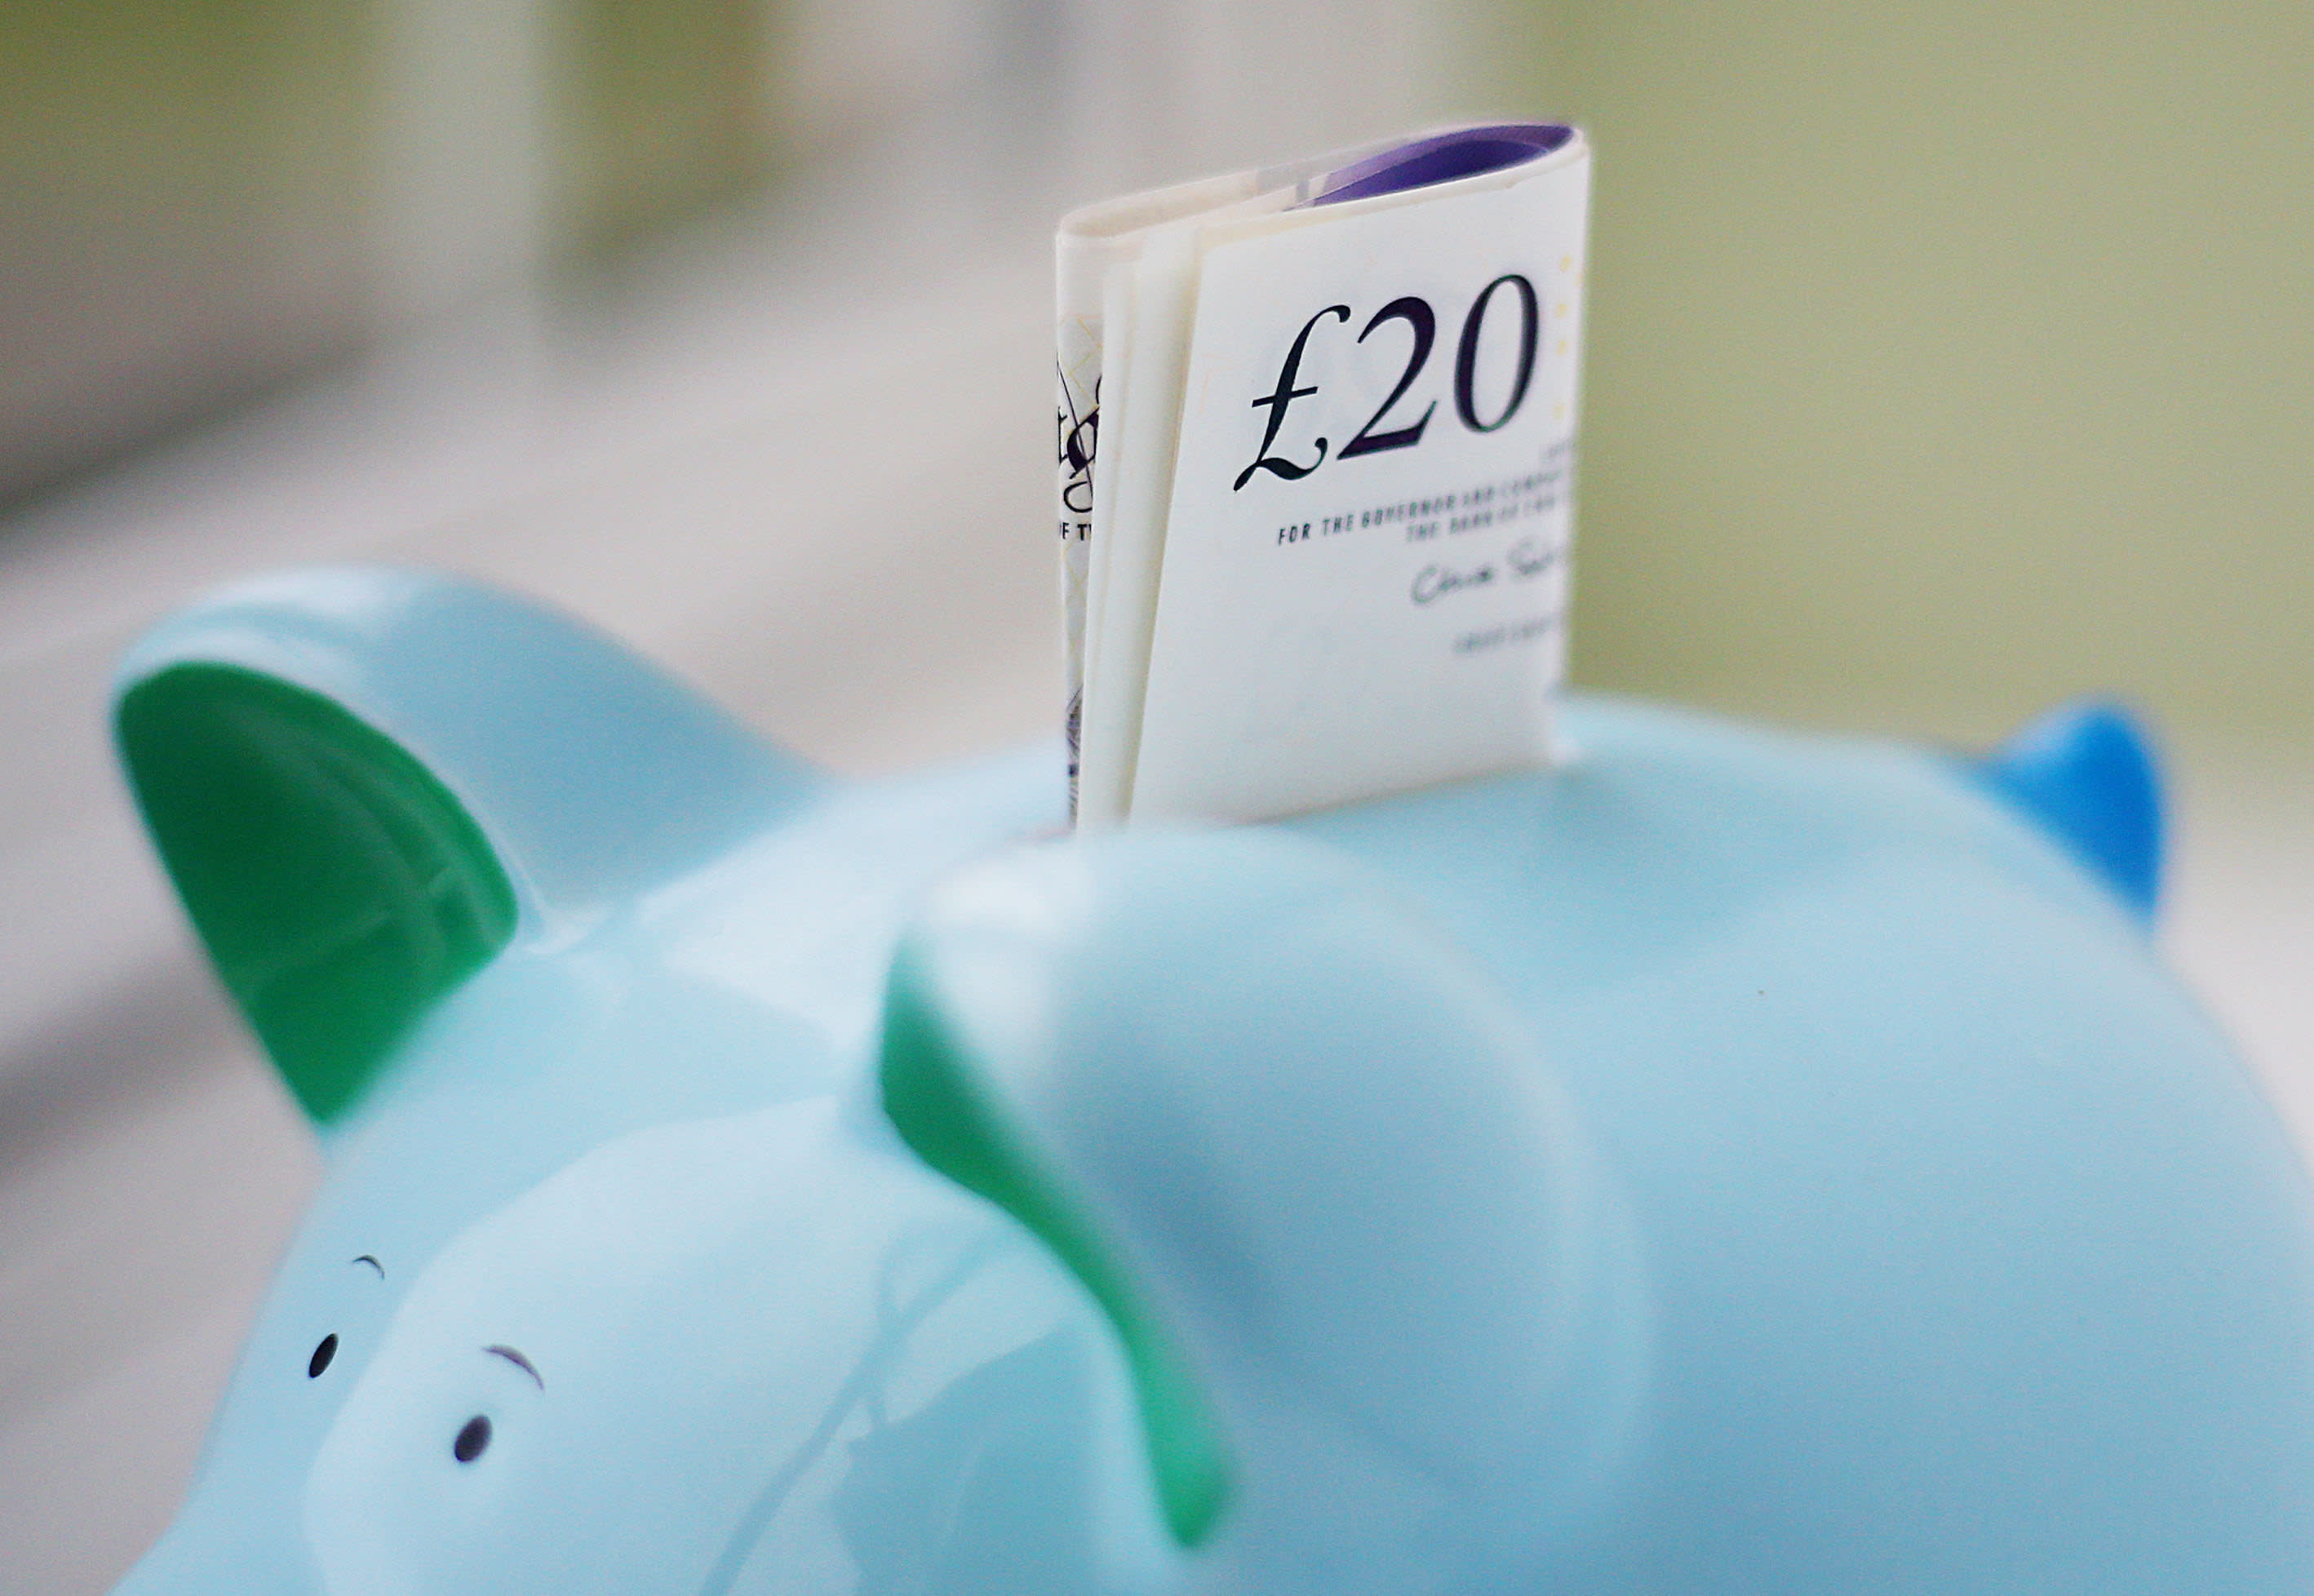 Average pension contributions fall